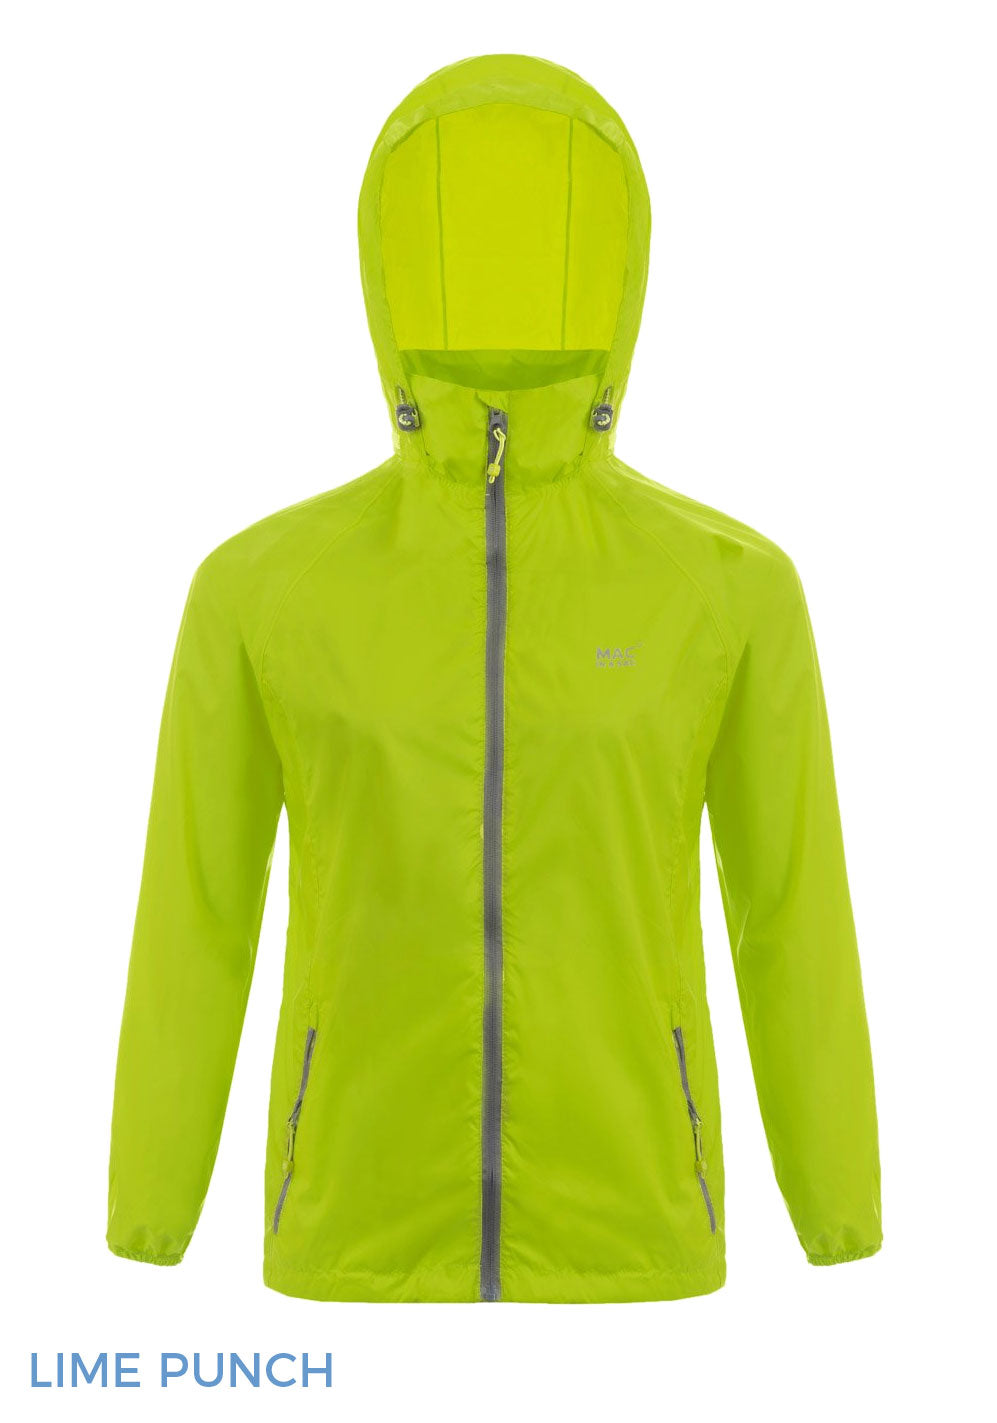 Hooded lime punch Packaway Waterproof Jacket by Lighthouse